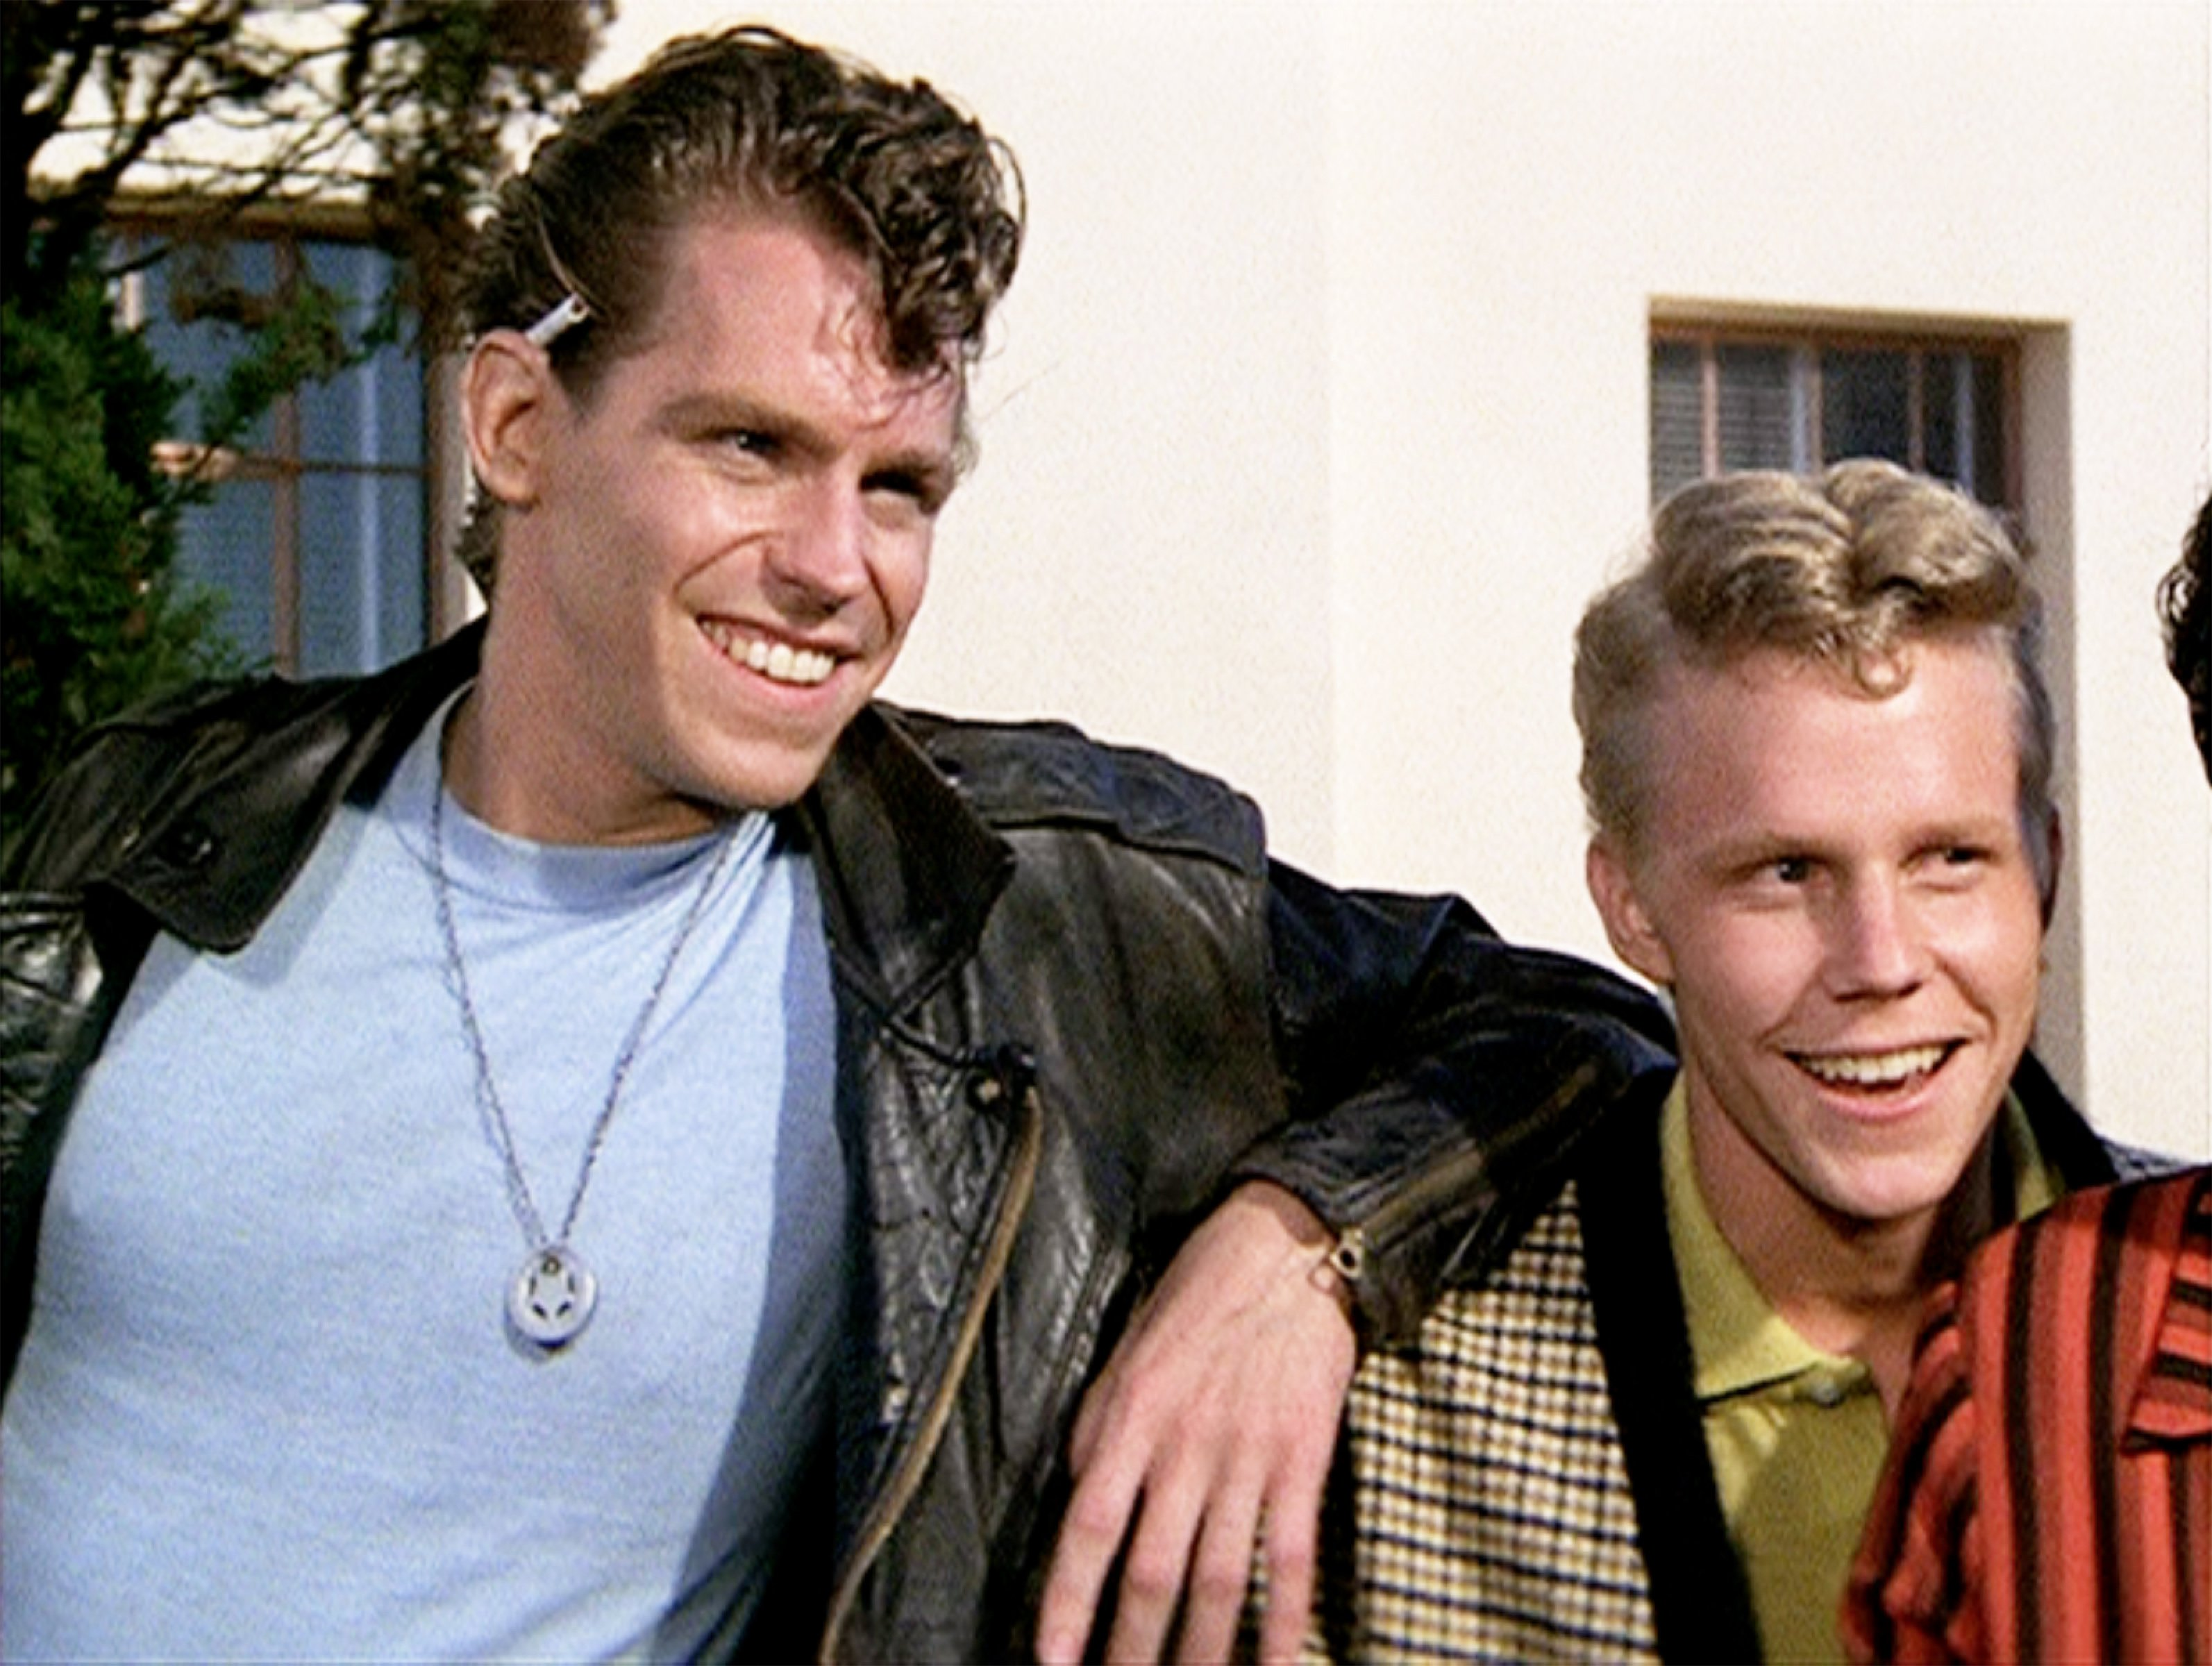 """From left Jeff Conaway as Kenickie and Kelly Ward as Putzie at theinitial theatrical release of the film, """"Grease,"""" on June 16, 1978 